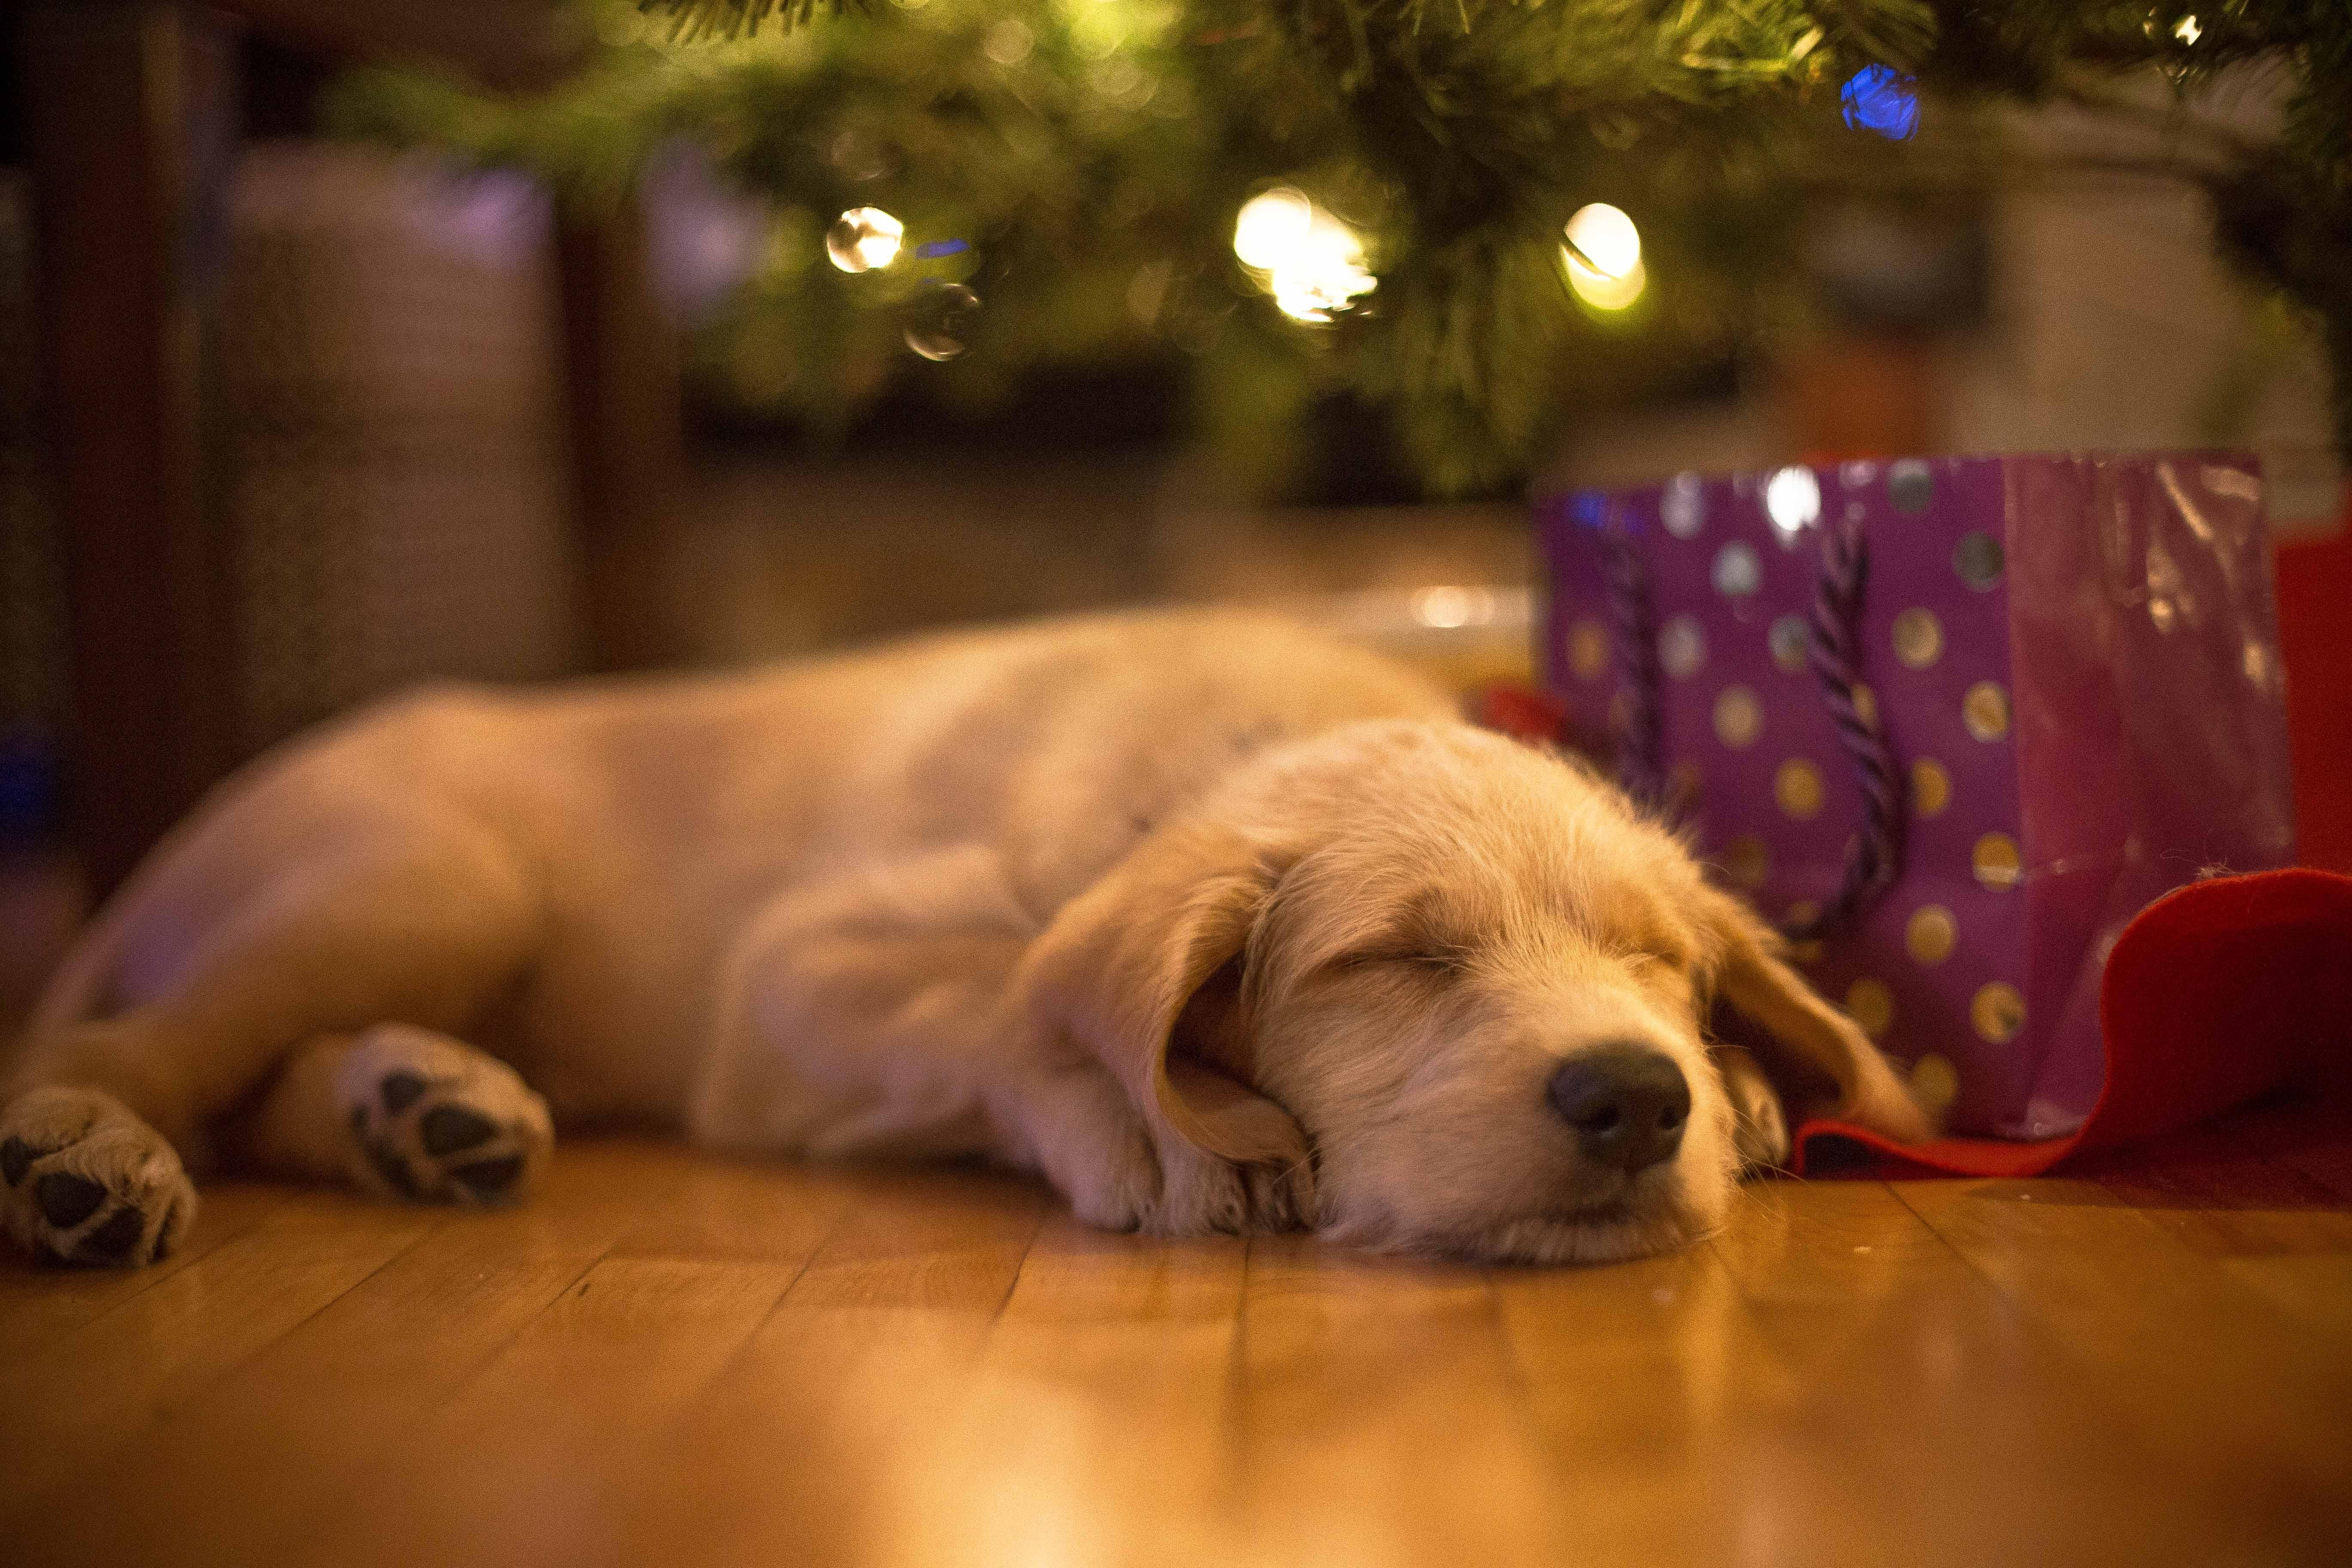 This New Puppy Fell Asleep Under The Christmas Tree Http Ift Tt